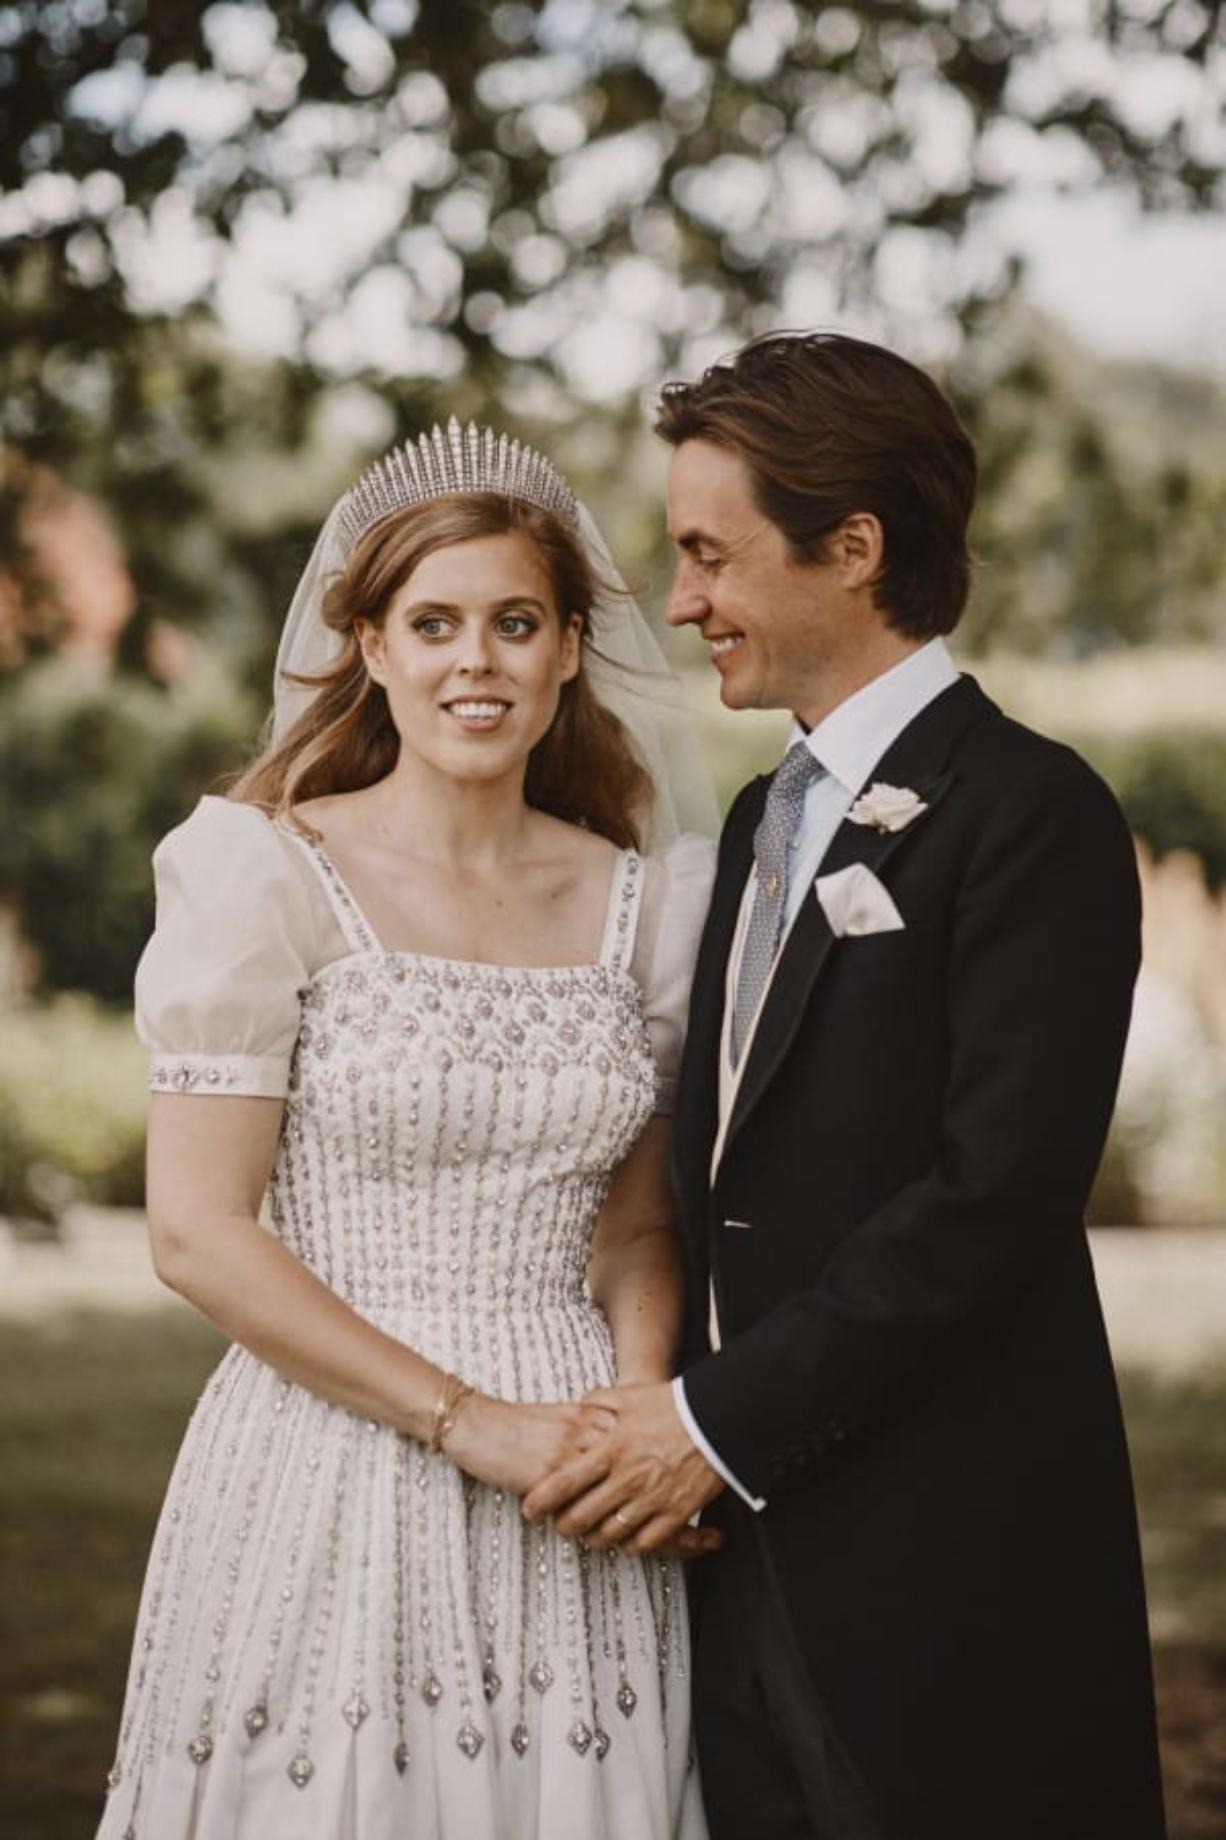 In this photograph released by the Royal Communications of Princess Beatrice and Edoardo Mapelli Mozzi on Sunday, July 19, 2020, Britain's Princess Beatrice and Edoardo Mapelli Mozzi pose for a photo after their wedding at The Royal Chapel of All Saints at Royal Lodge, Windsor, England. The queen'Aos granddaughter and the property tycoon were married on Friday in the Royal Chapel of All Saints at Royal Lodge, Windsor. The 94-year-old British monarch and her 99-year-old husband Prince Philip attended, along with the parents and siblings of the bride and groom.